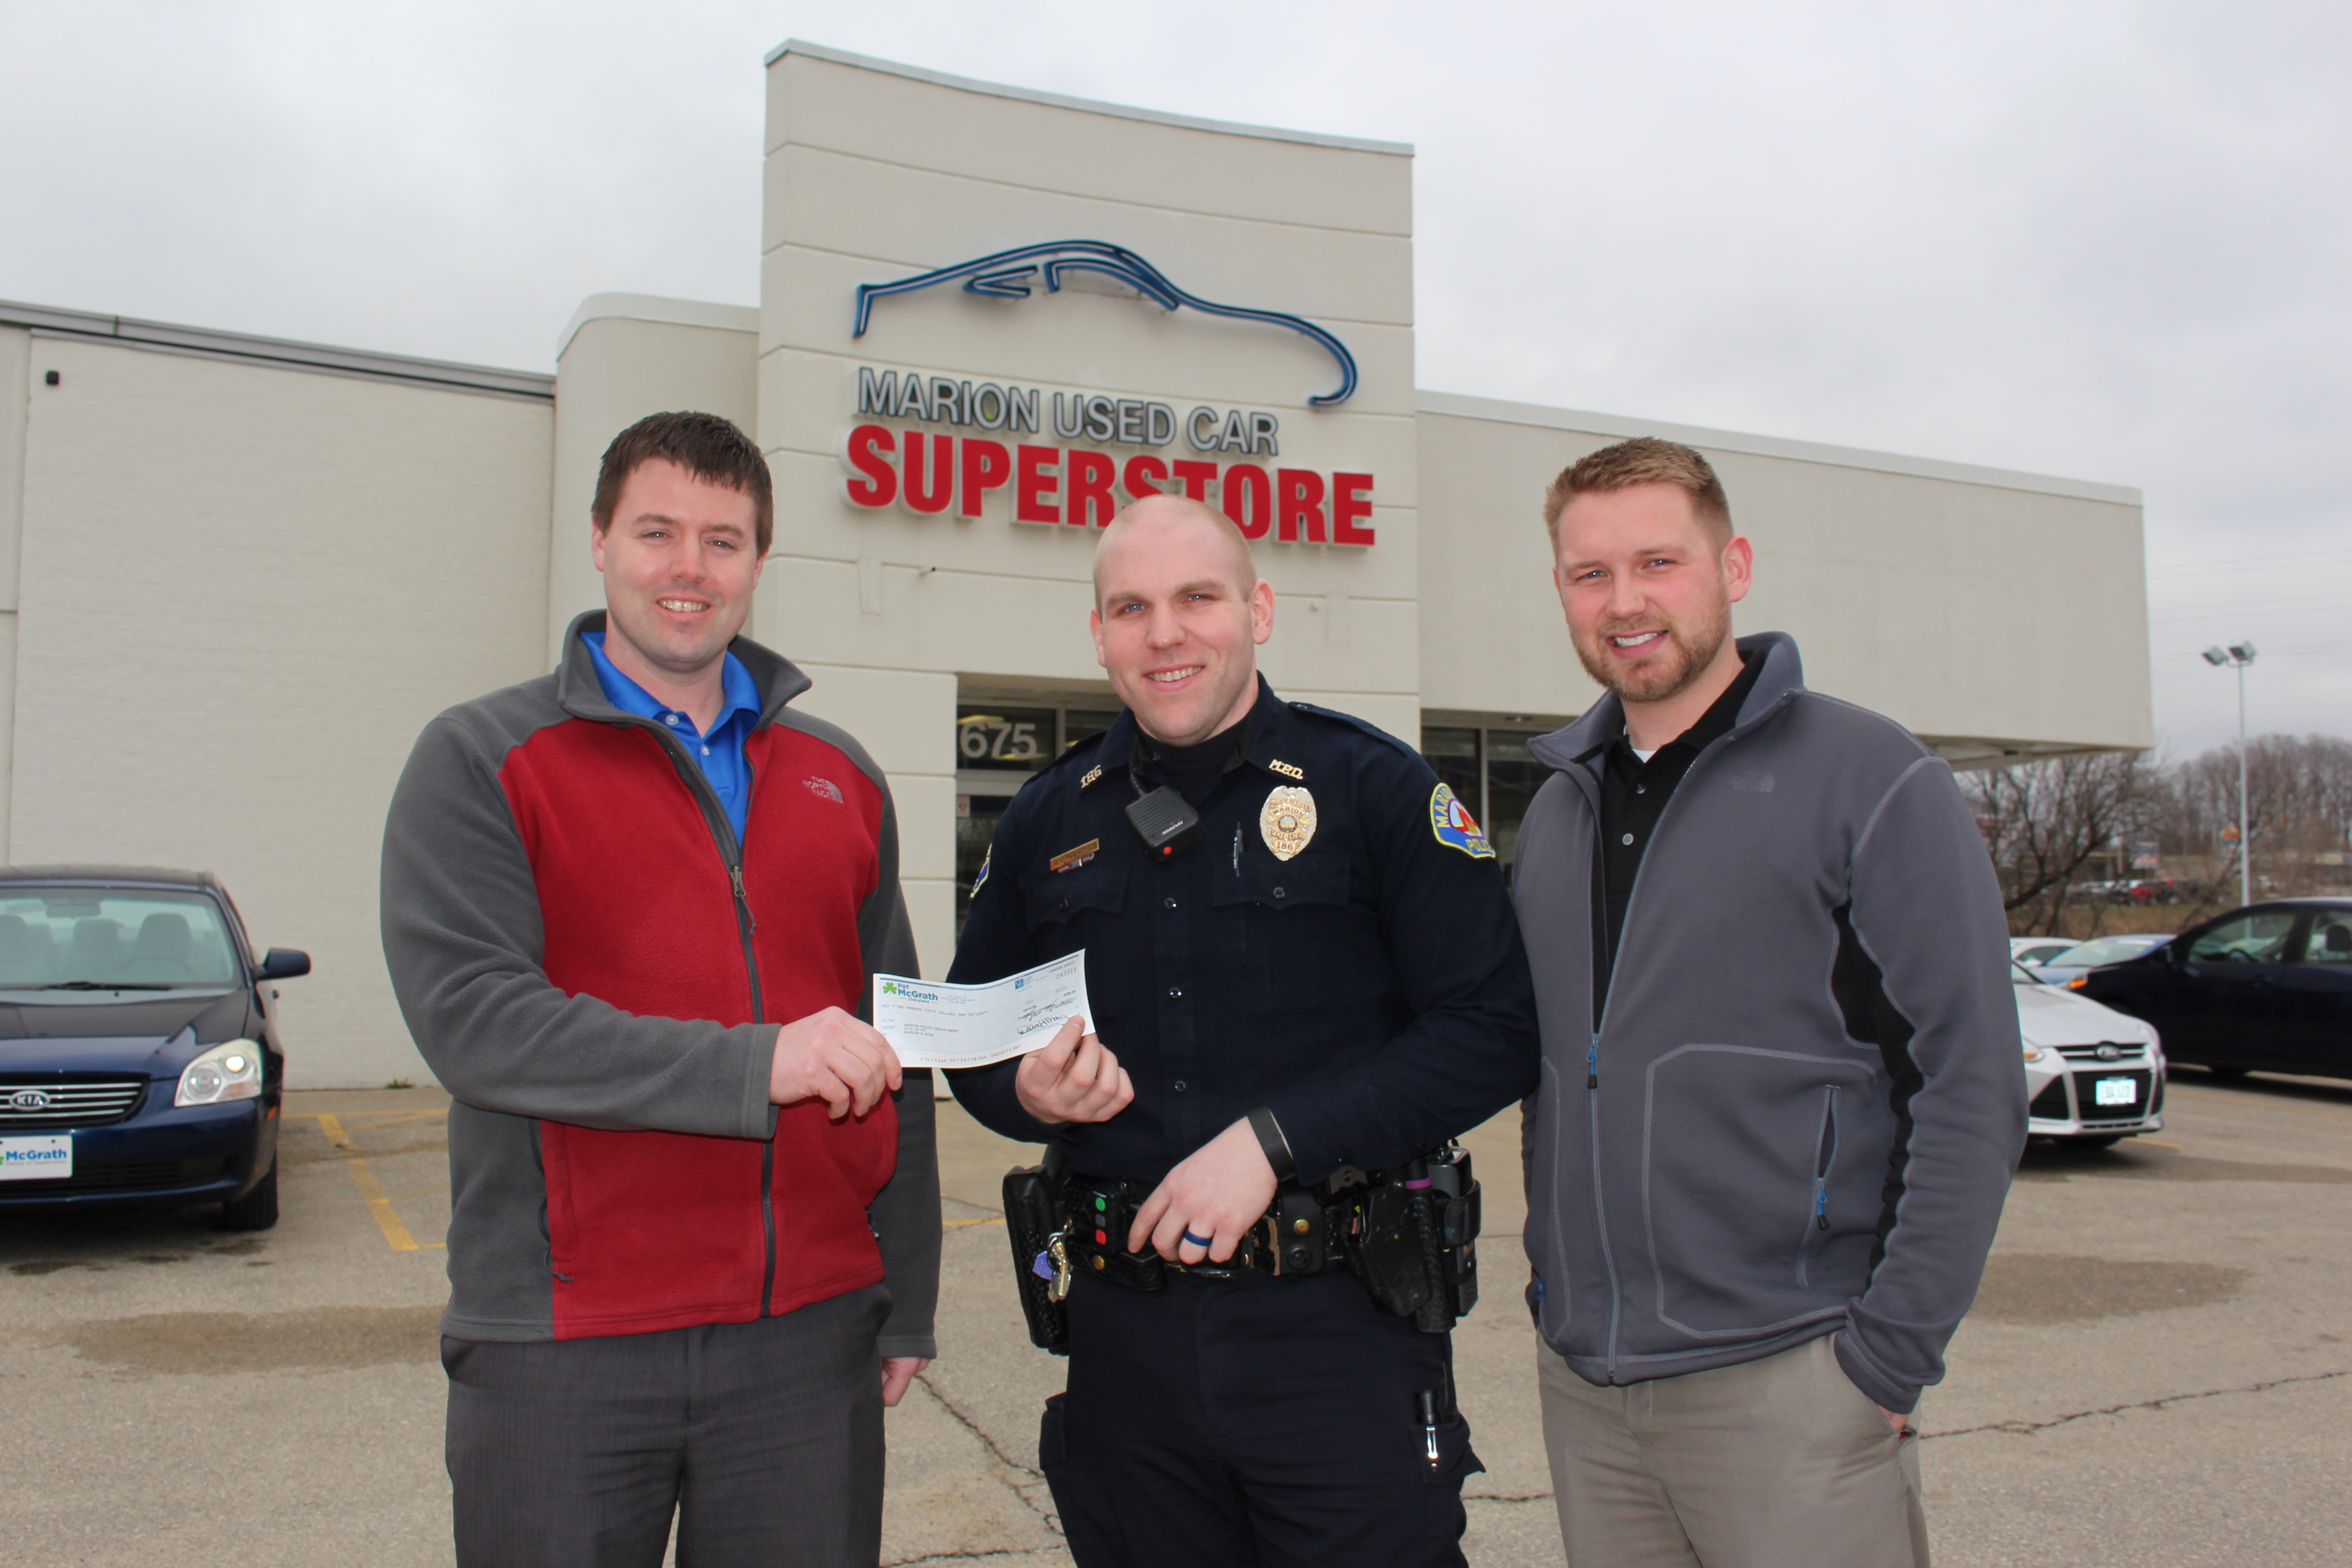 Marion Used Car Superstore supports Marion Police ...